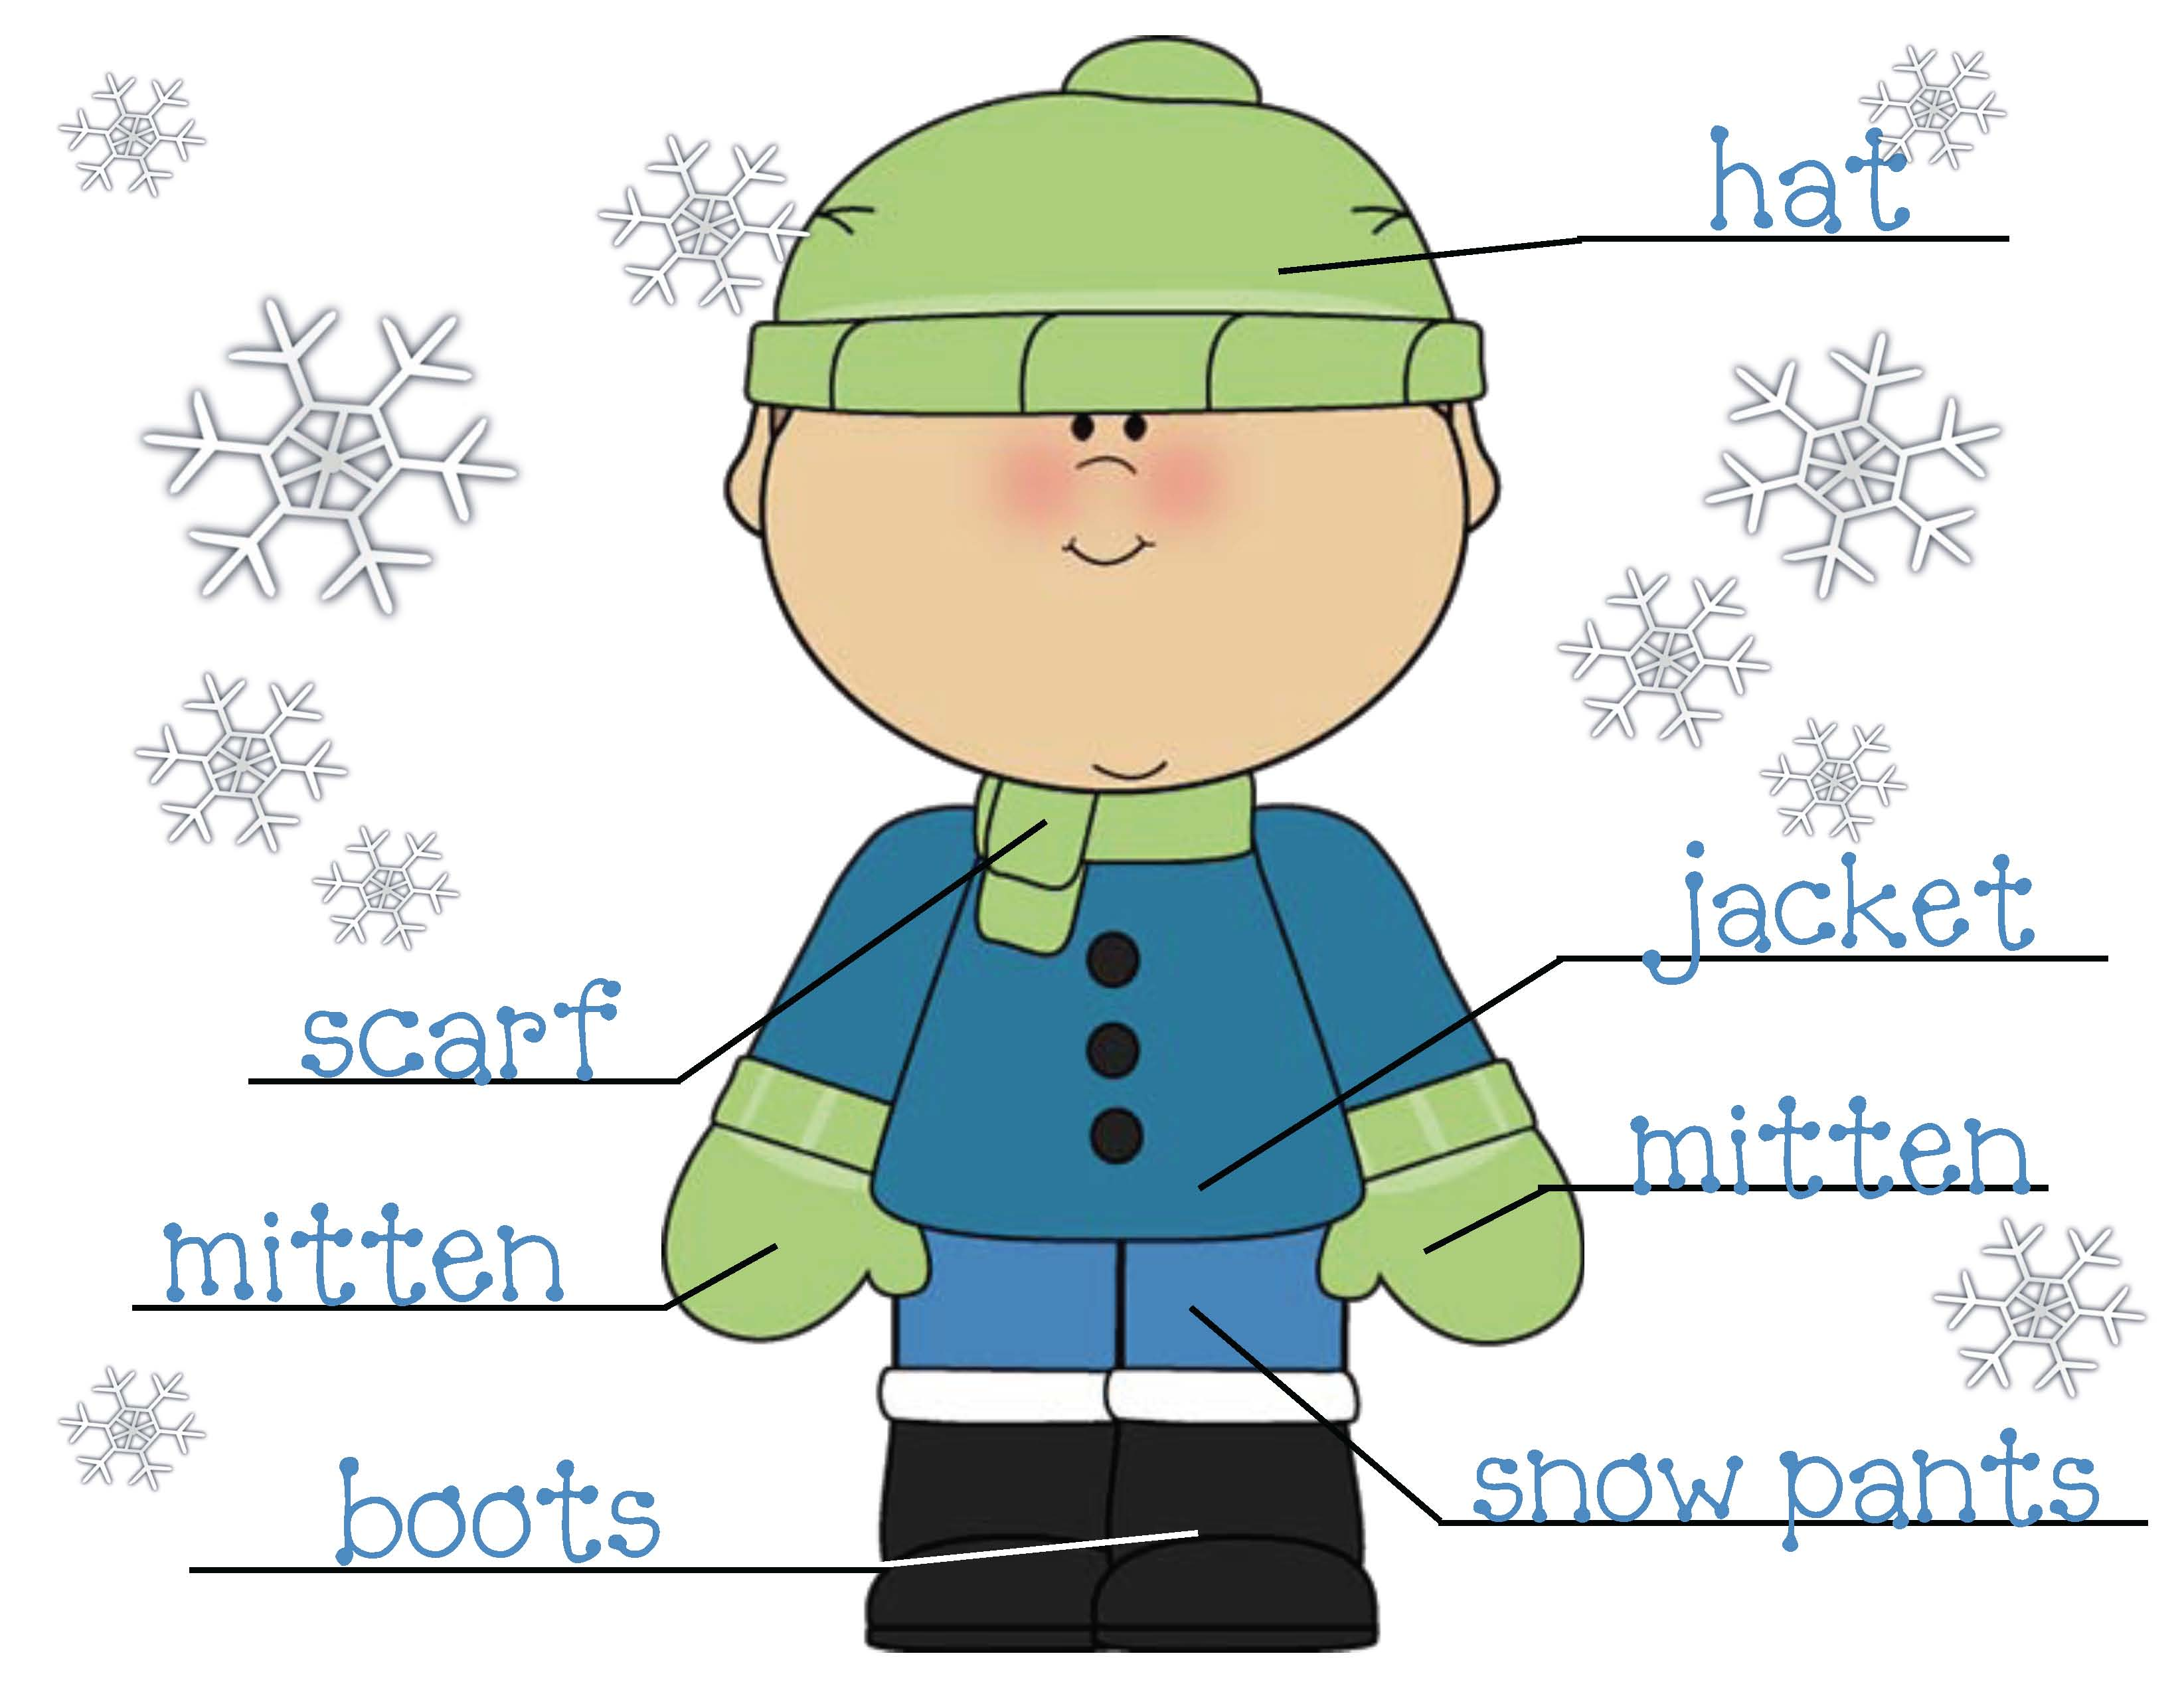 winter cothing games, winter clothing activities, winter worksheeets, writing prompts for January, activities to go with the story The Jacket I'll Wear in the Snow, color games, word games